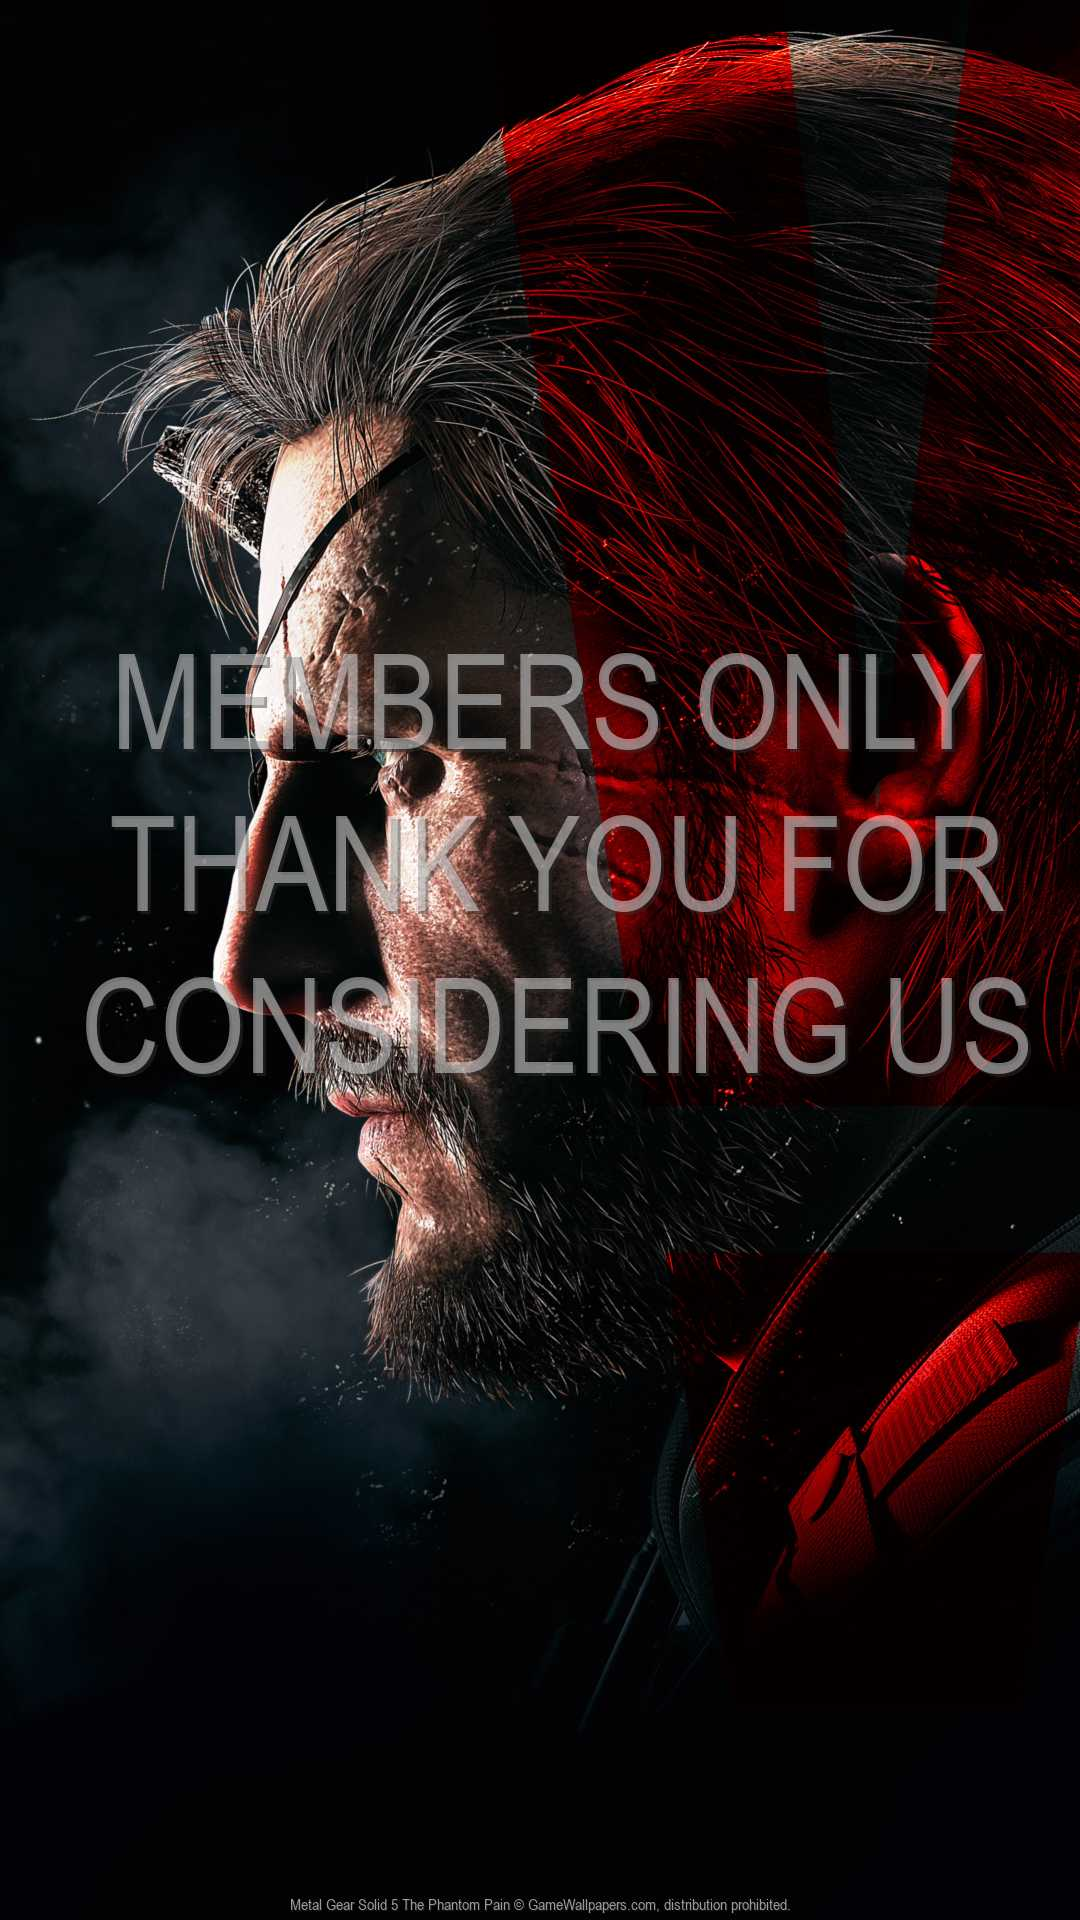 Metal Gear Solid 5: The Phantom Pain 1080p Vertical Mobile wallpaper or background 01